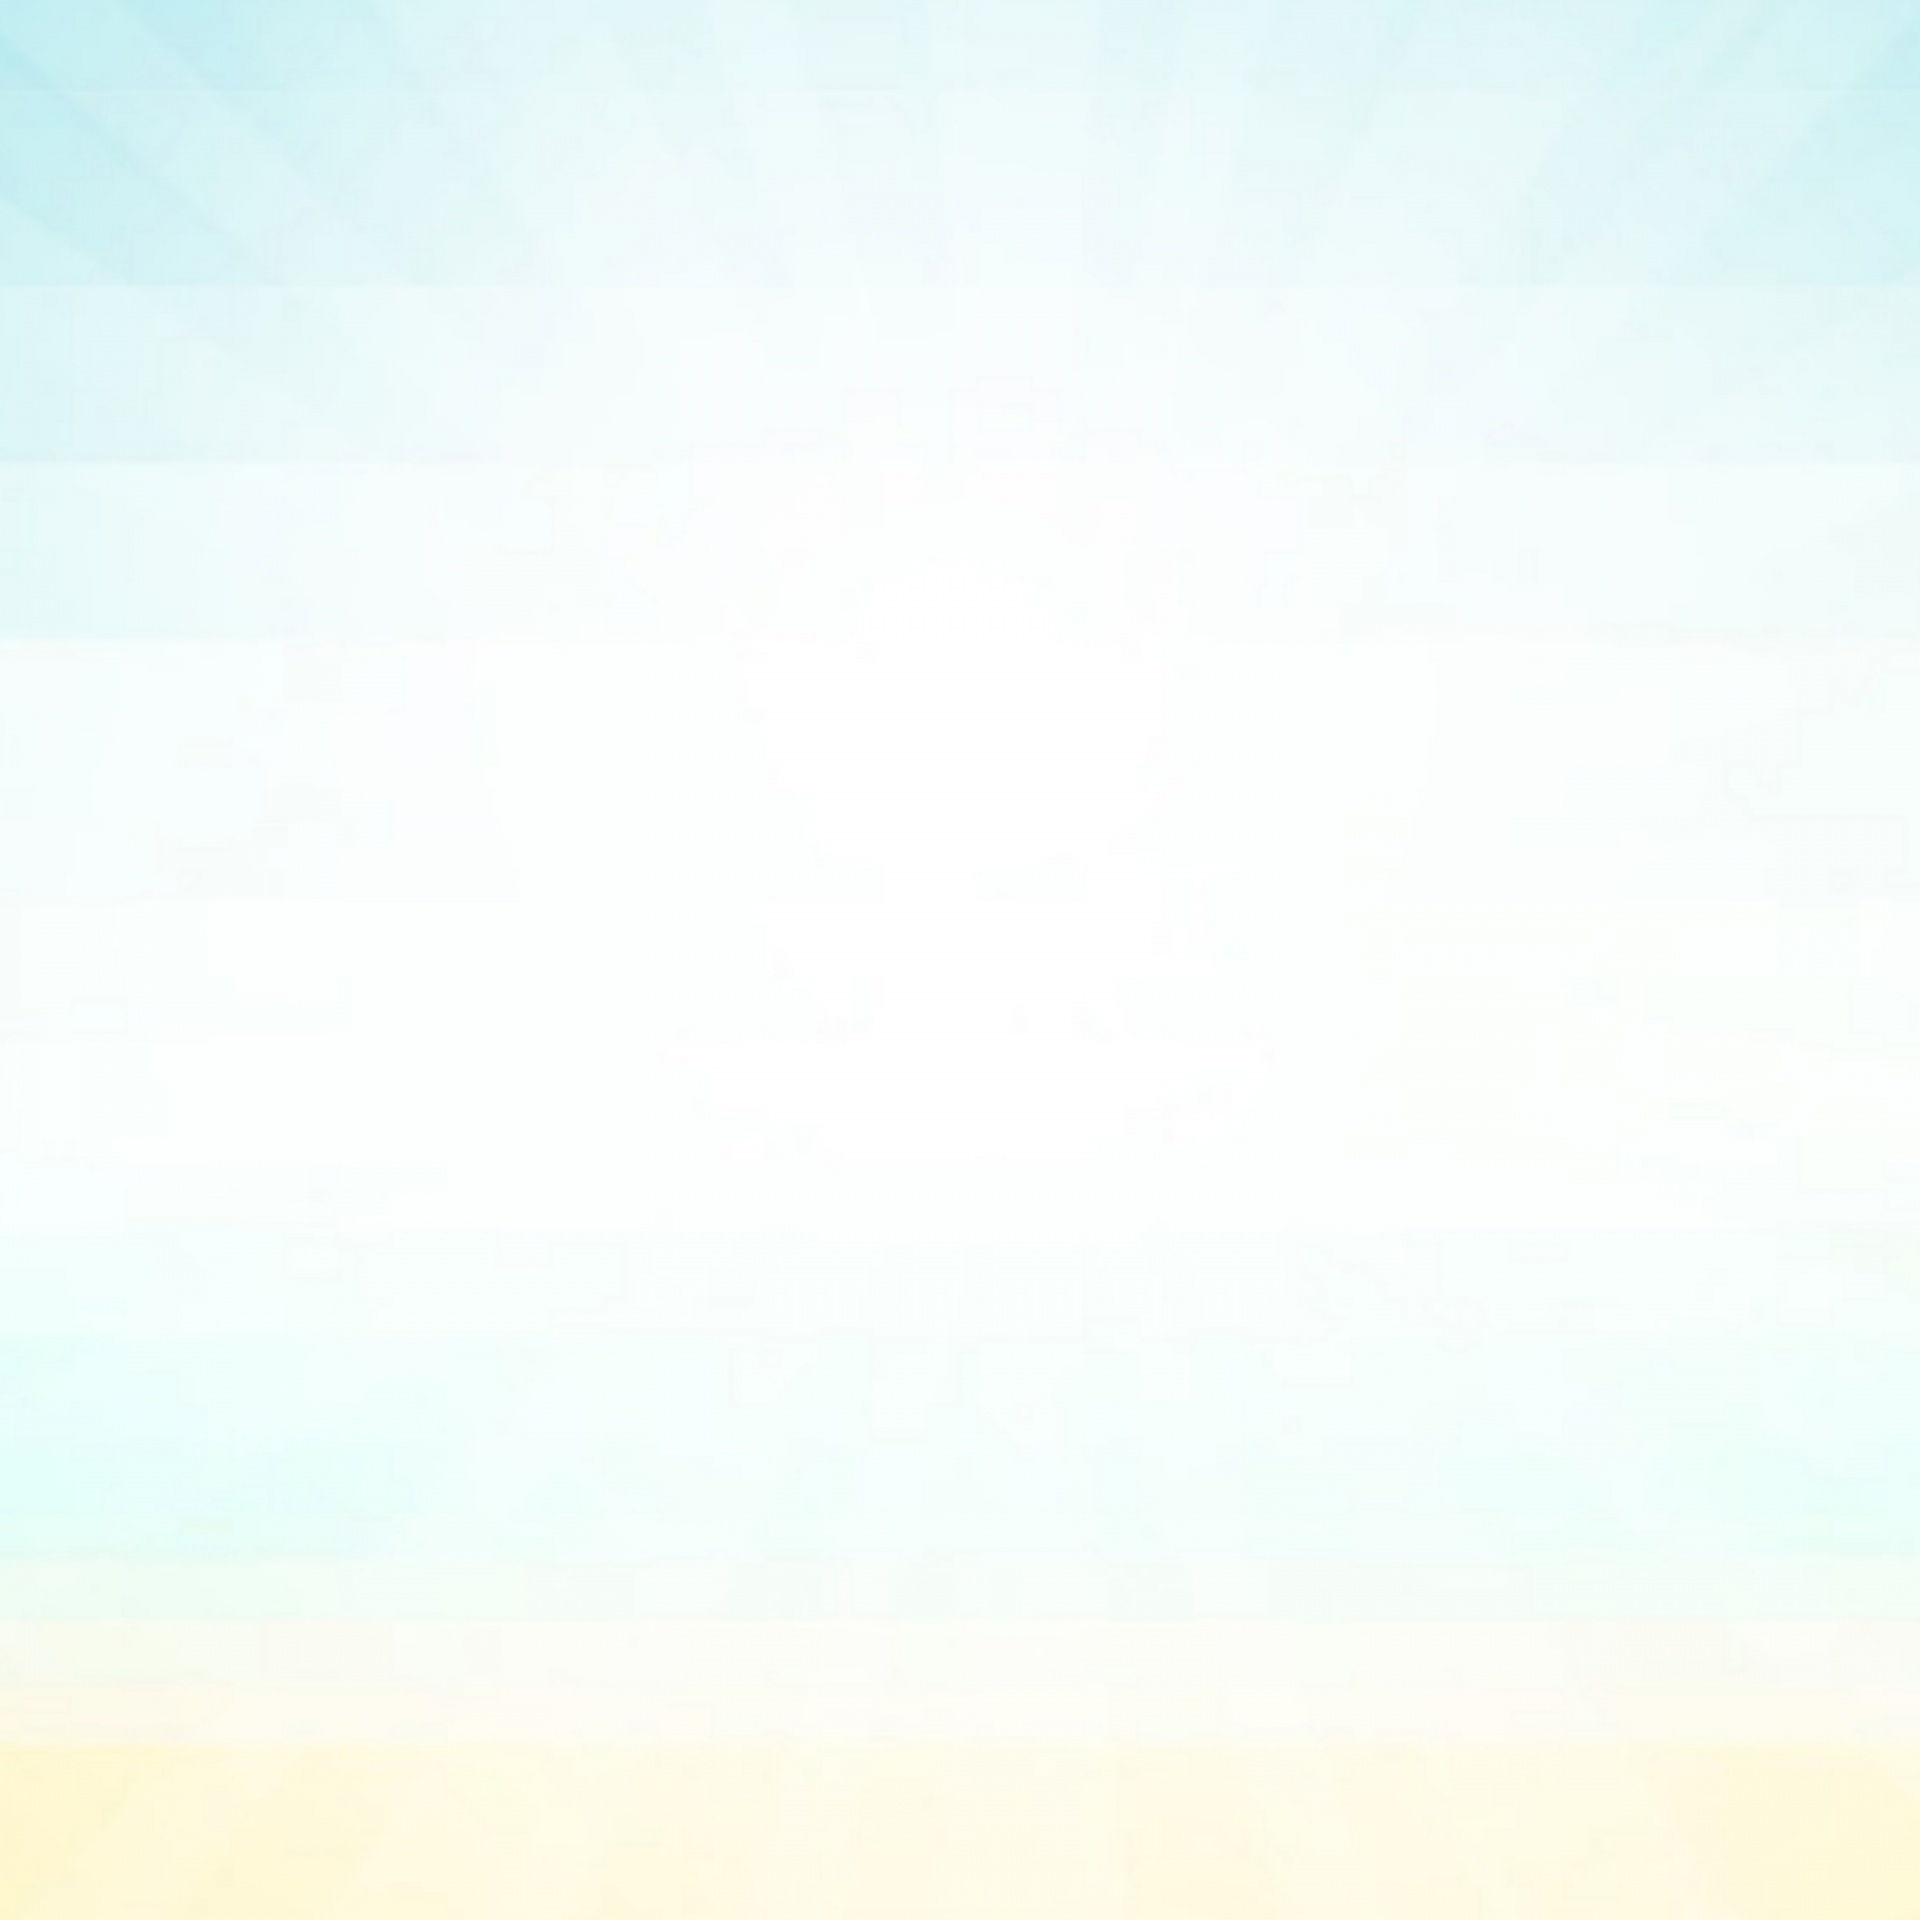 Wallpaper Light Blue Gradient Background Free Image From